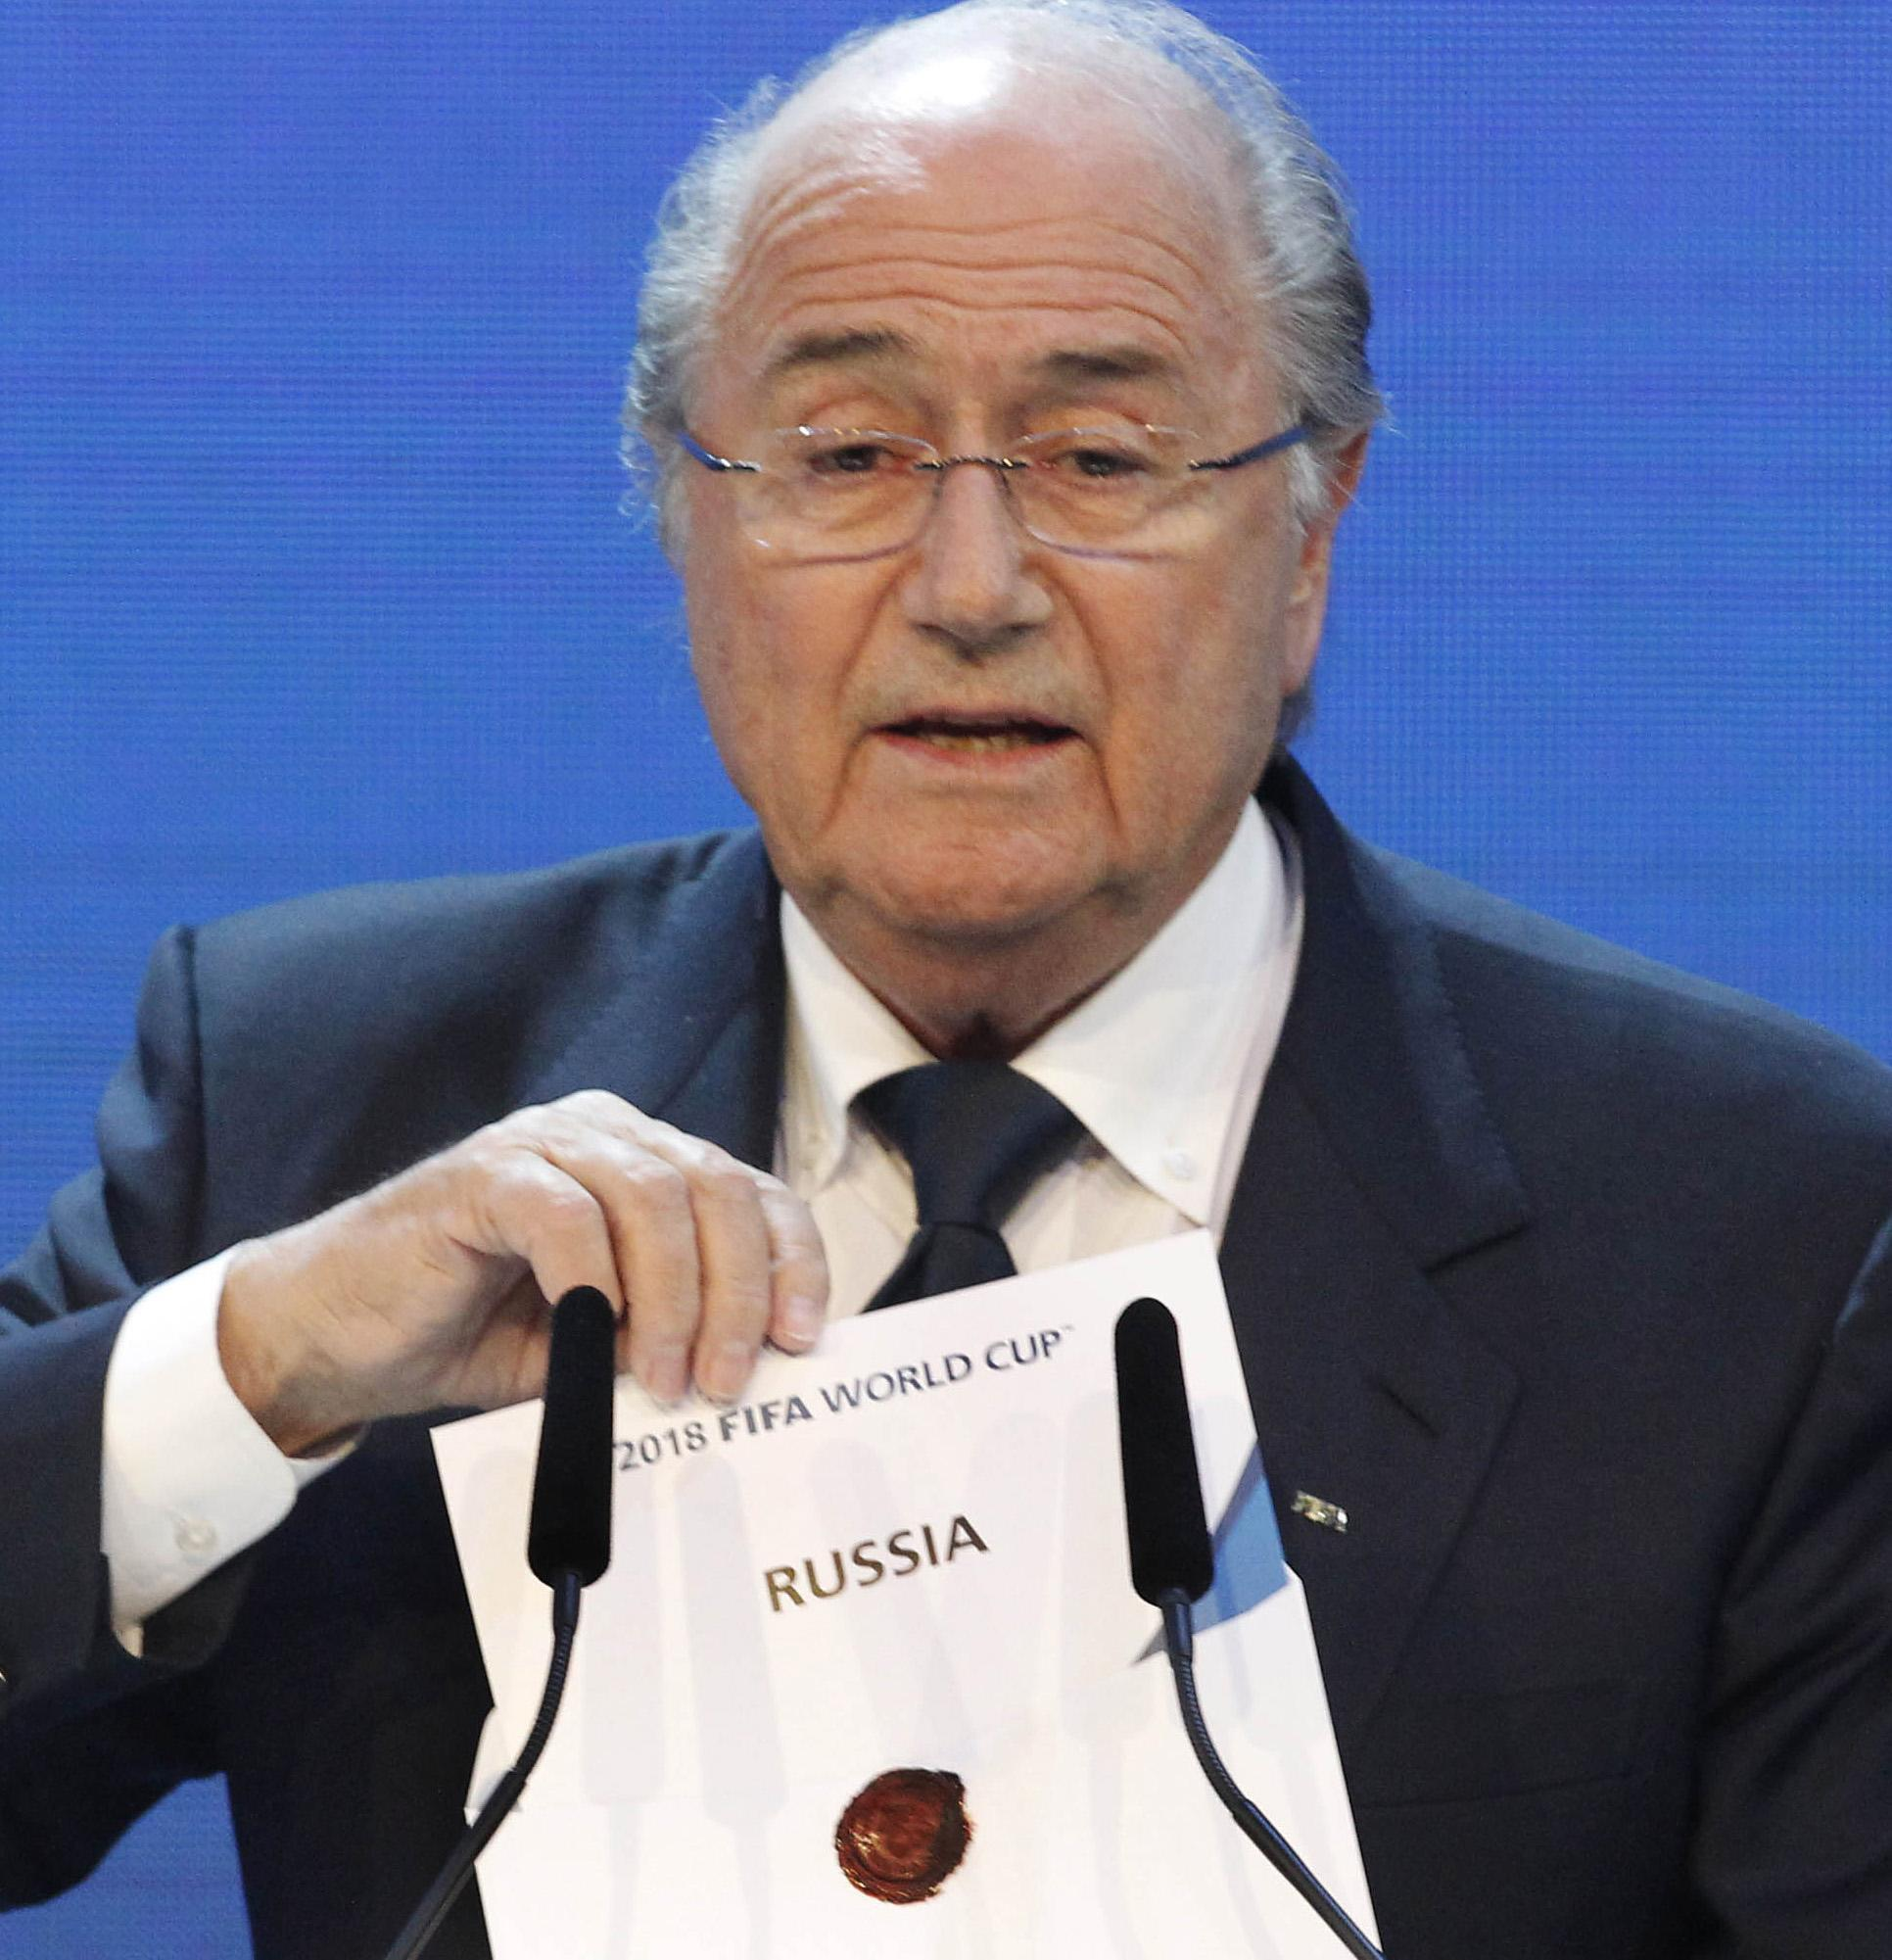 Grant Wahl For FIFA President